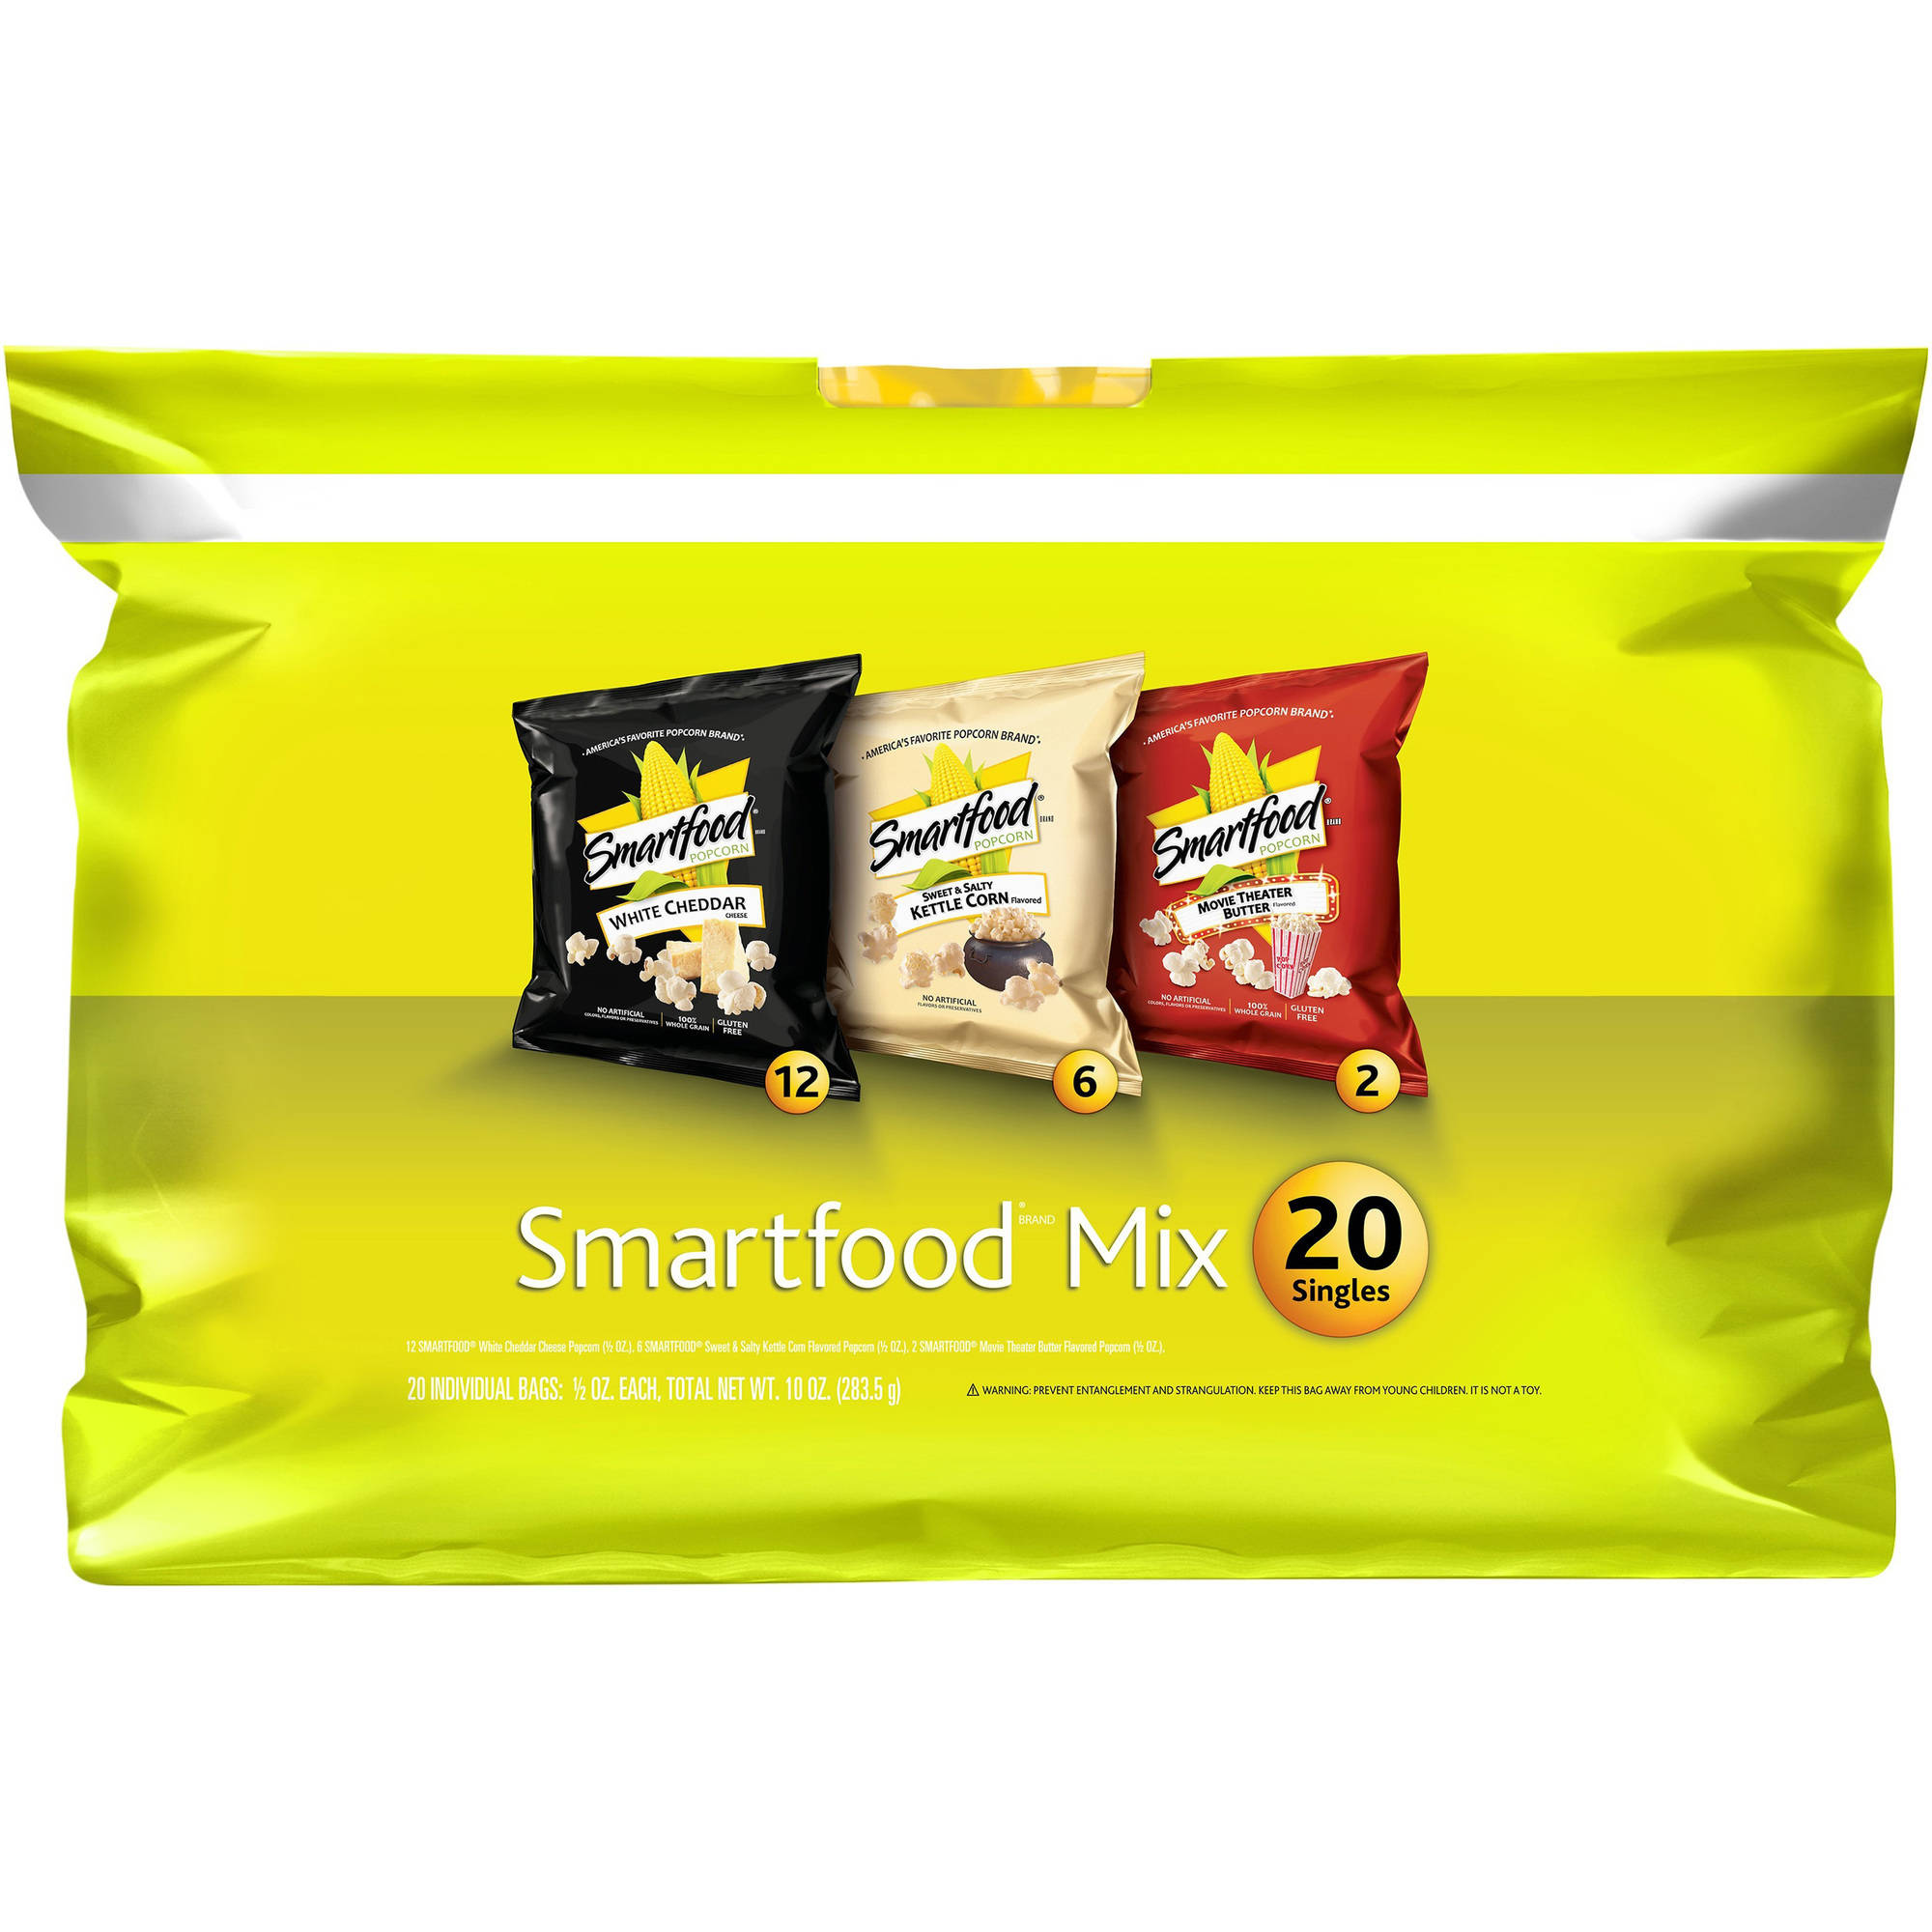 Smartfood Mix Popcorn Variety Pack, 0.5 oz, 20 count